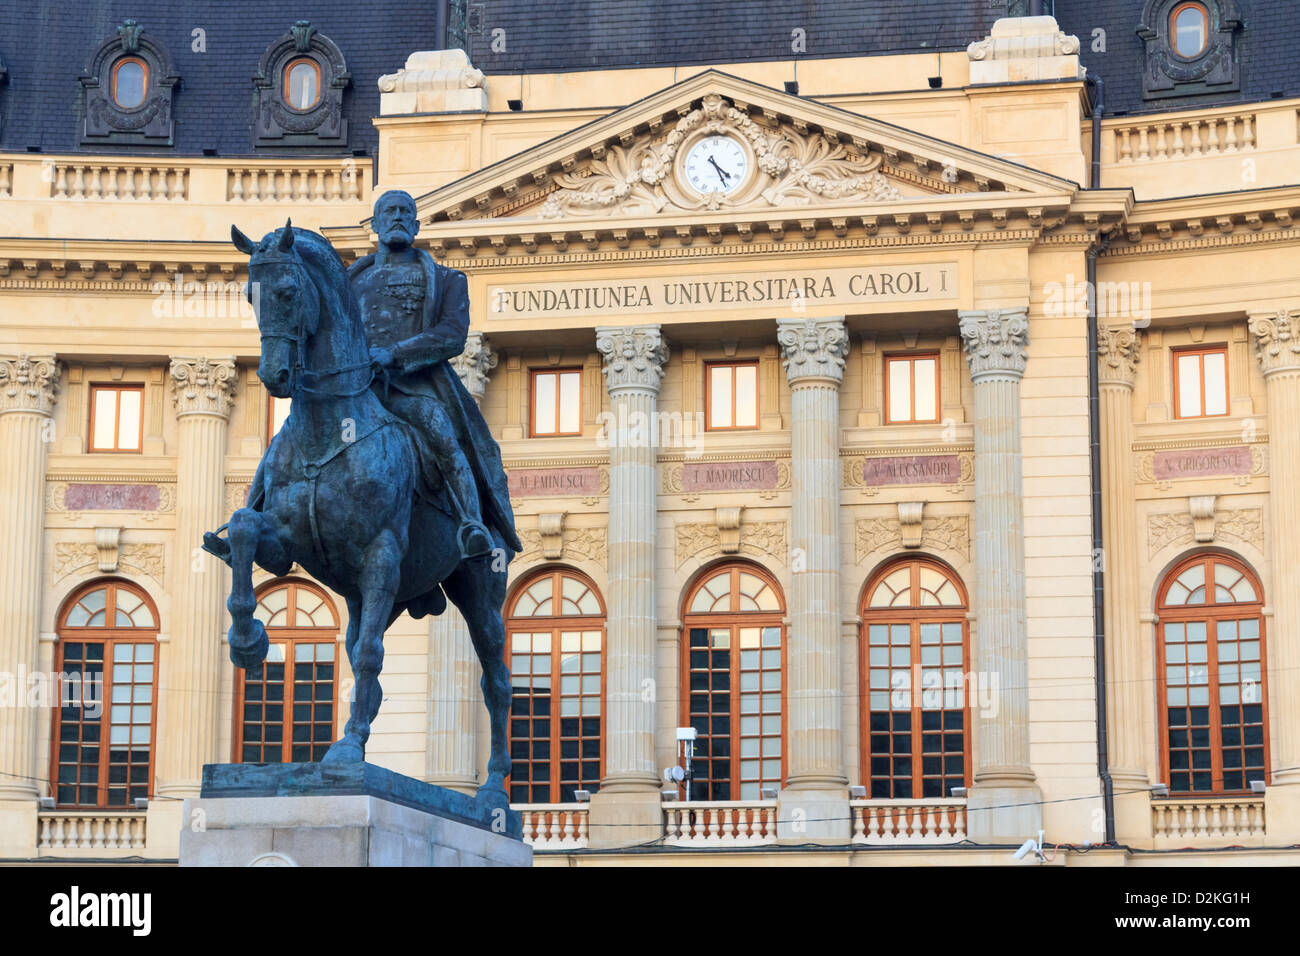 The facade of the university of medicine and pharmacy devoted to Carol I in Bucharest, Romania - Stock Image